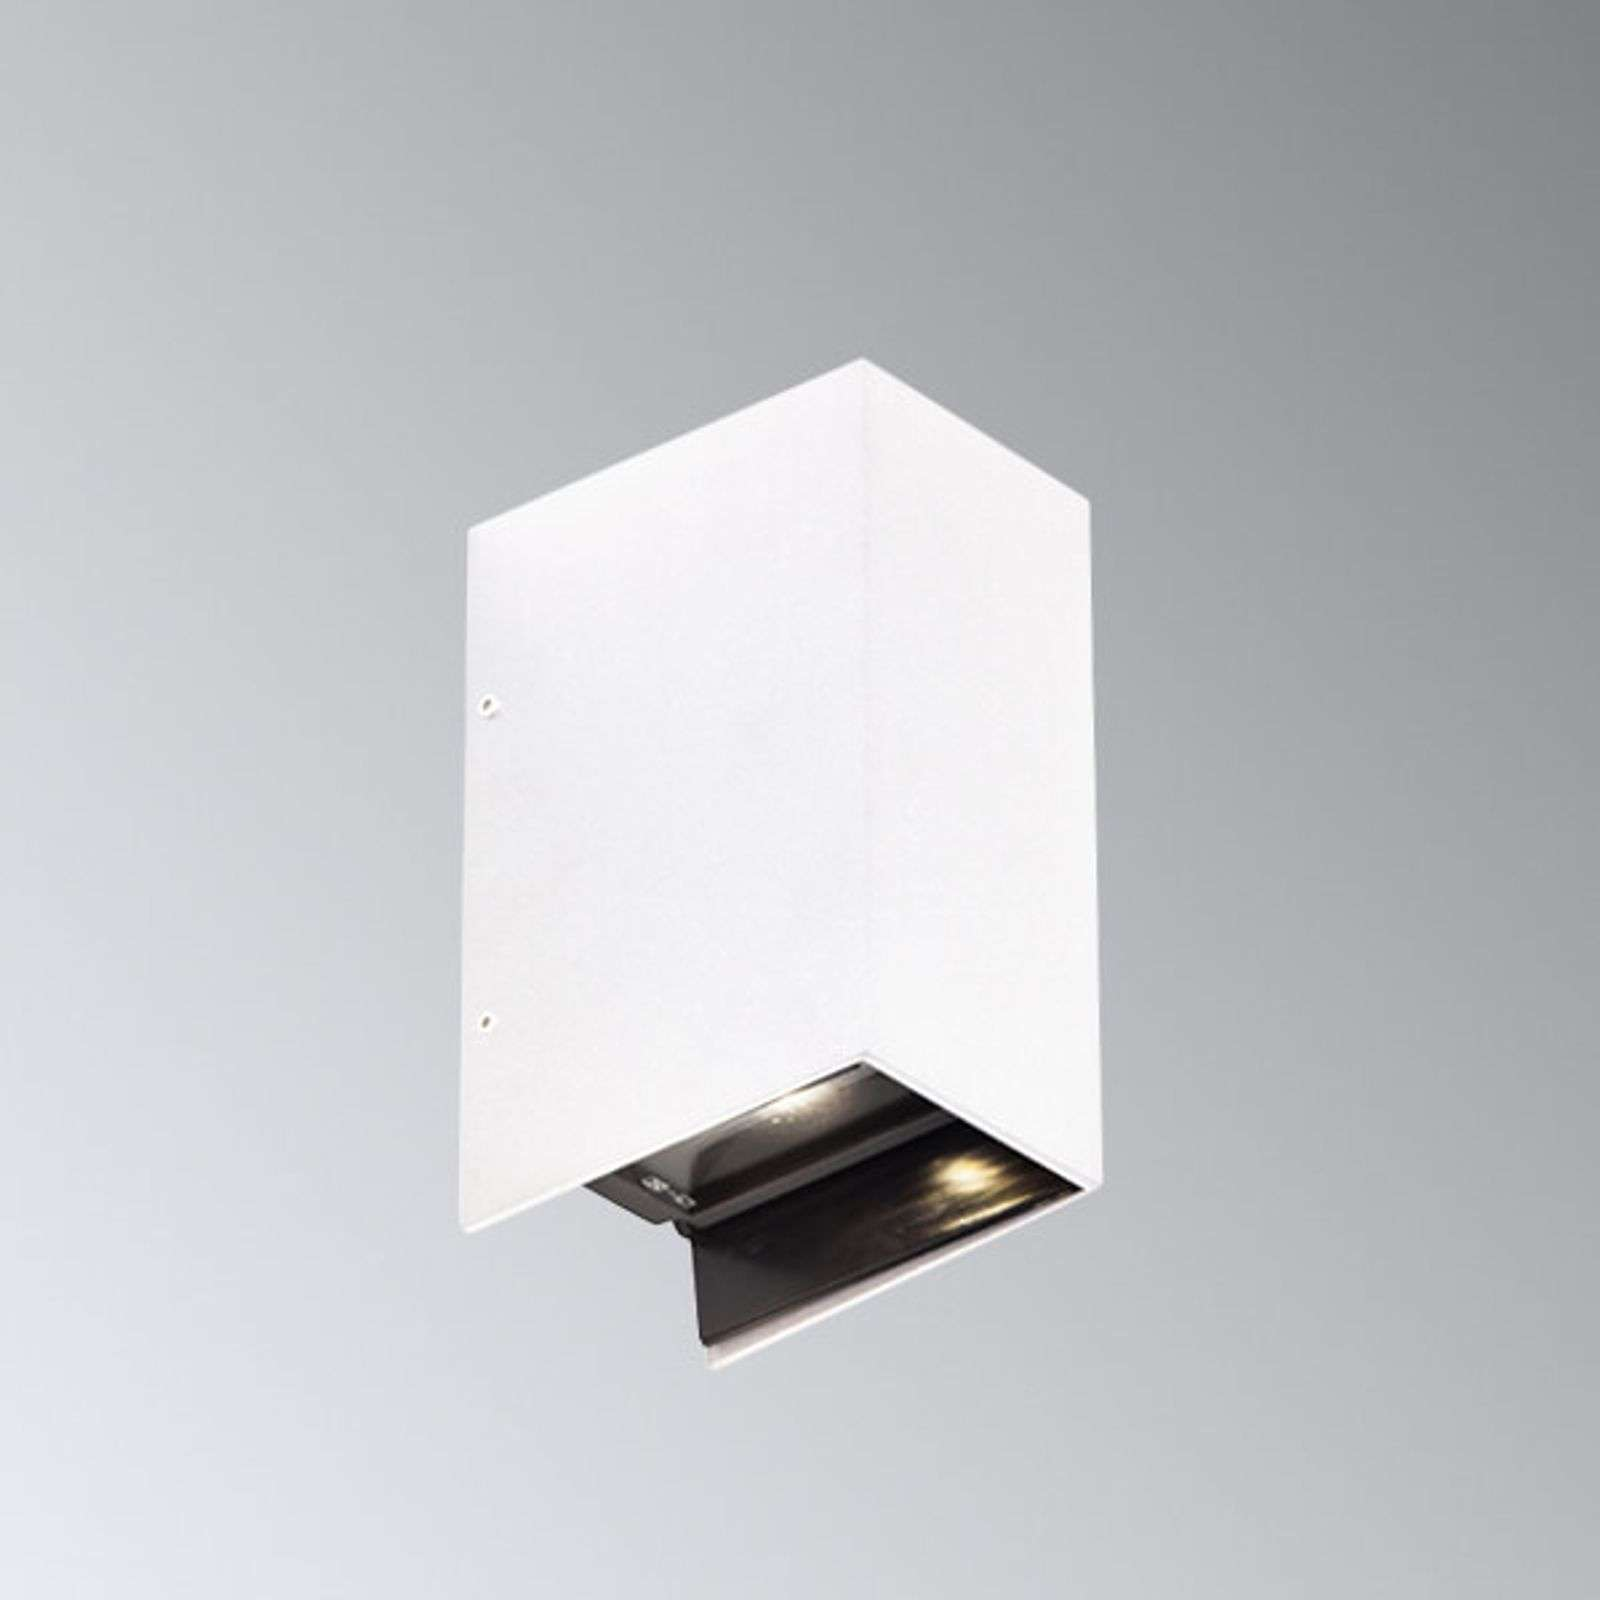 Adapt - applique per esterni LED angolare a 2 luci